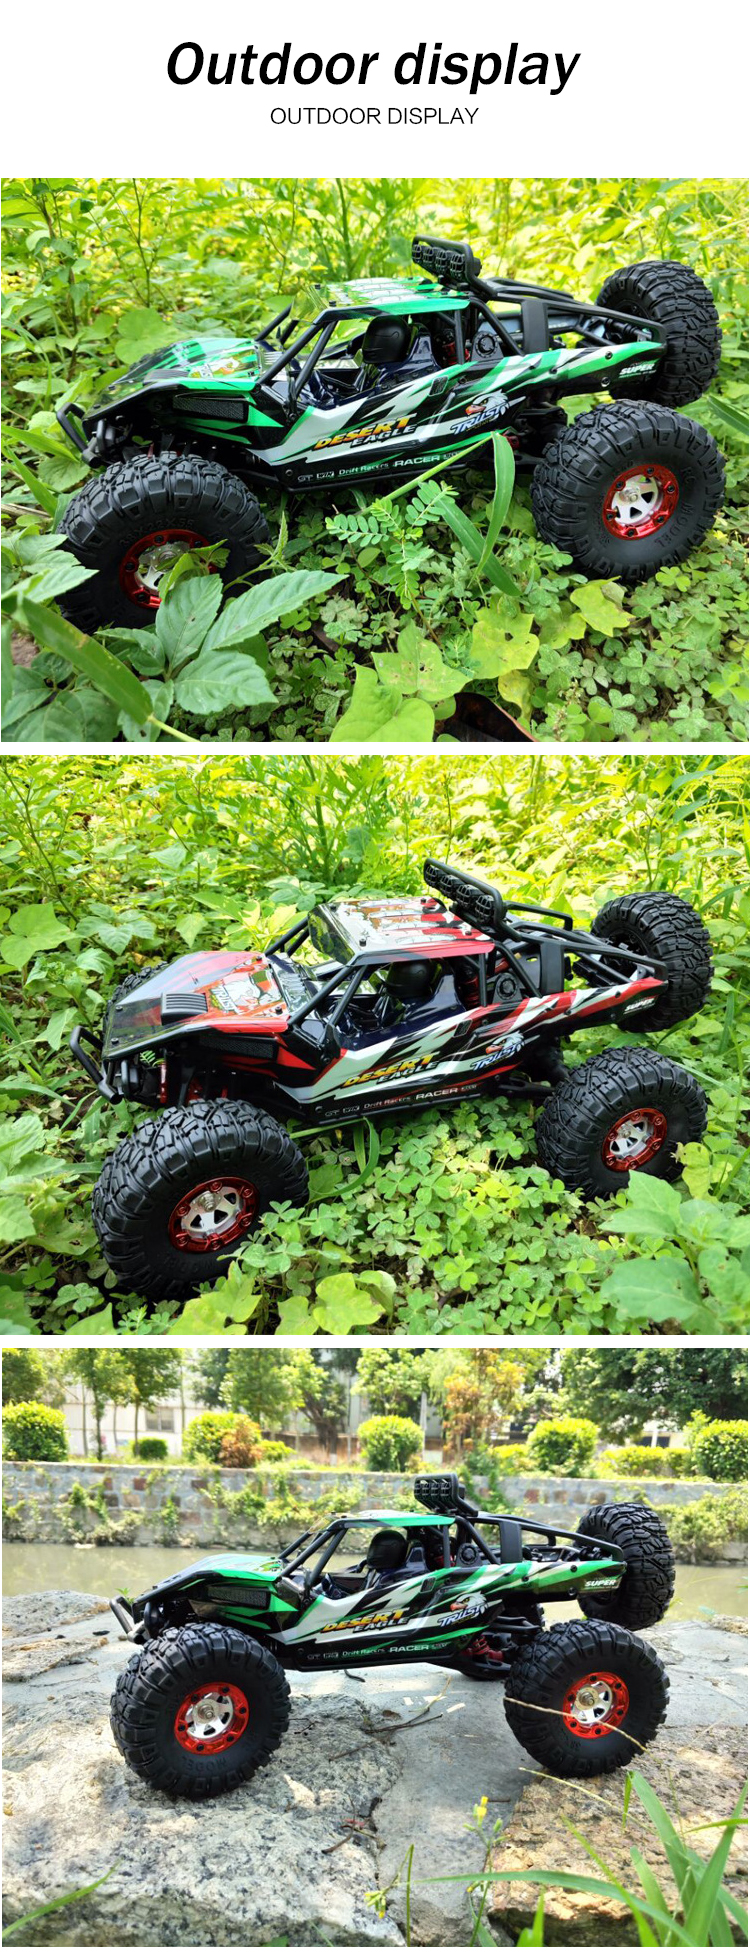 TongLi toy professional radio control high speed off-road durable simulation 4X4  1/12 jeep 2.4G rock wall climbing 4WD rc car